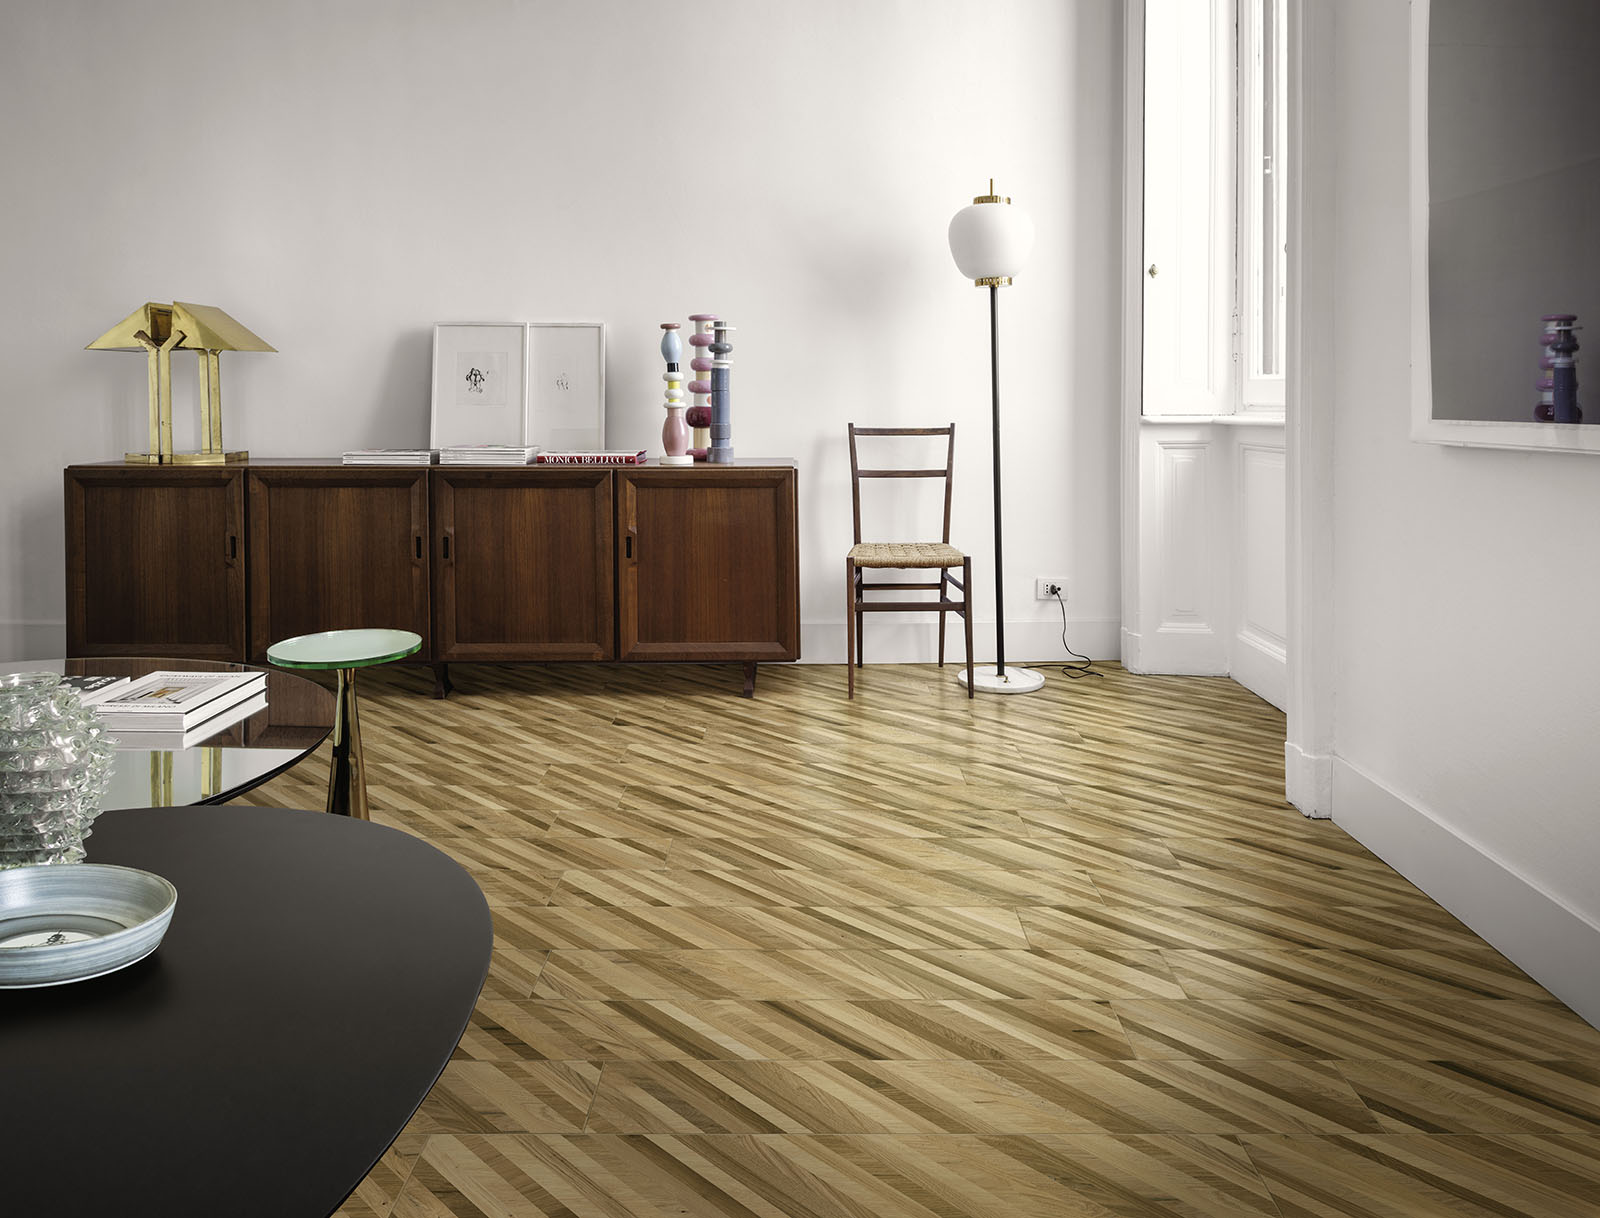 Top Carrelage Imitation Parquet Chene Blanchi. Top Tablon Gris With  PY66